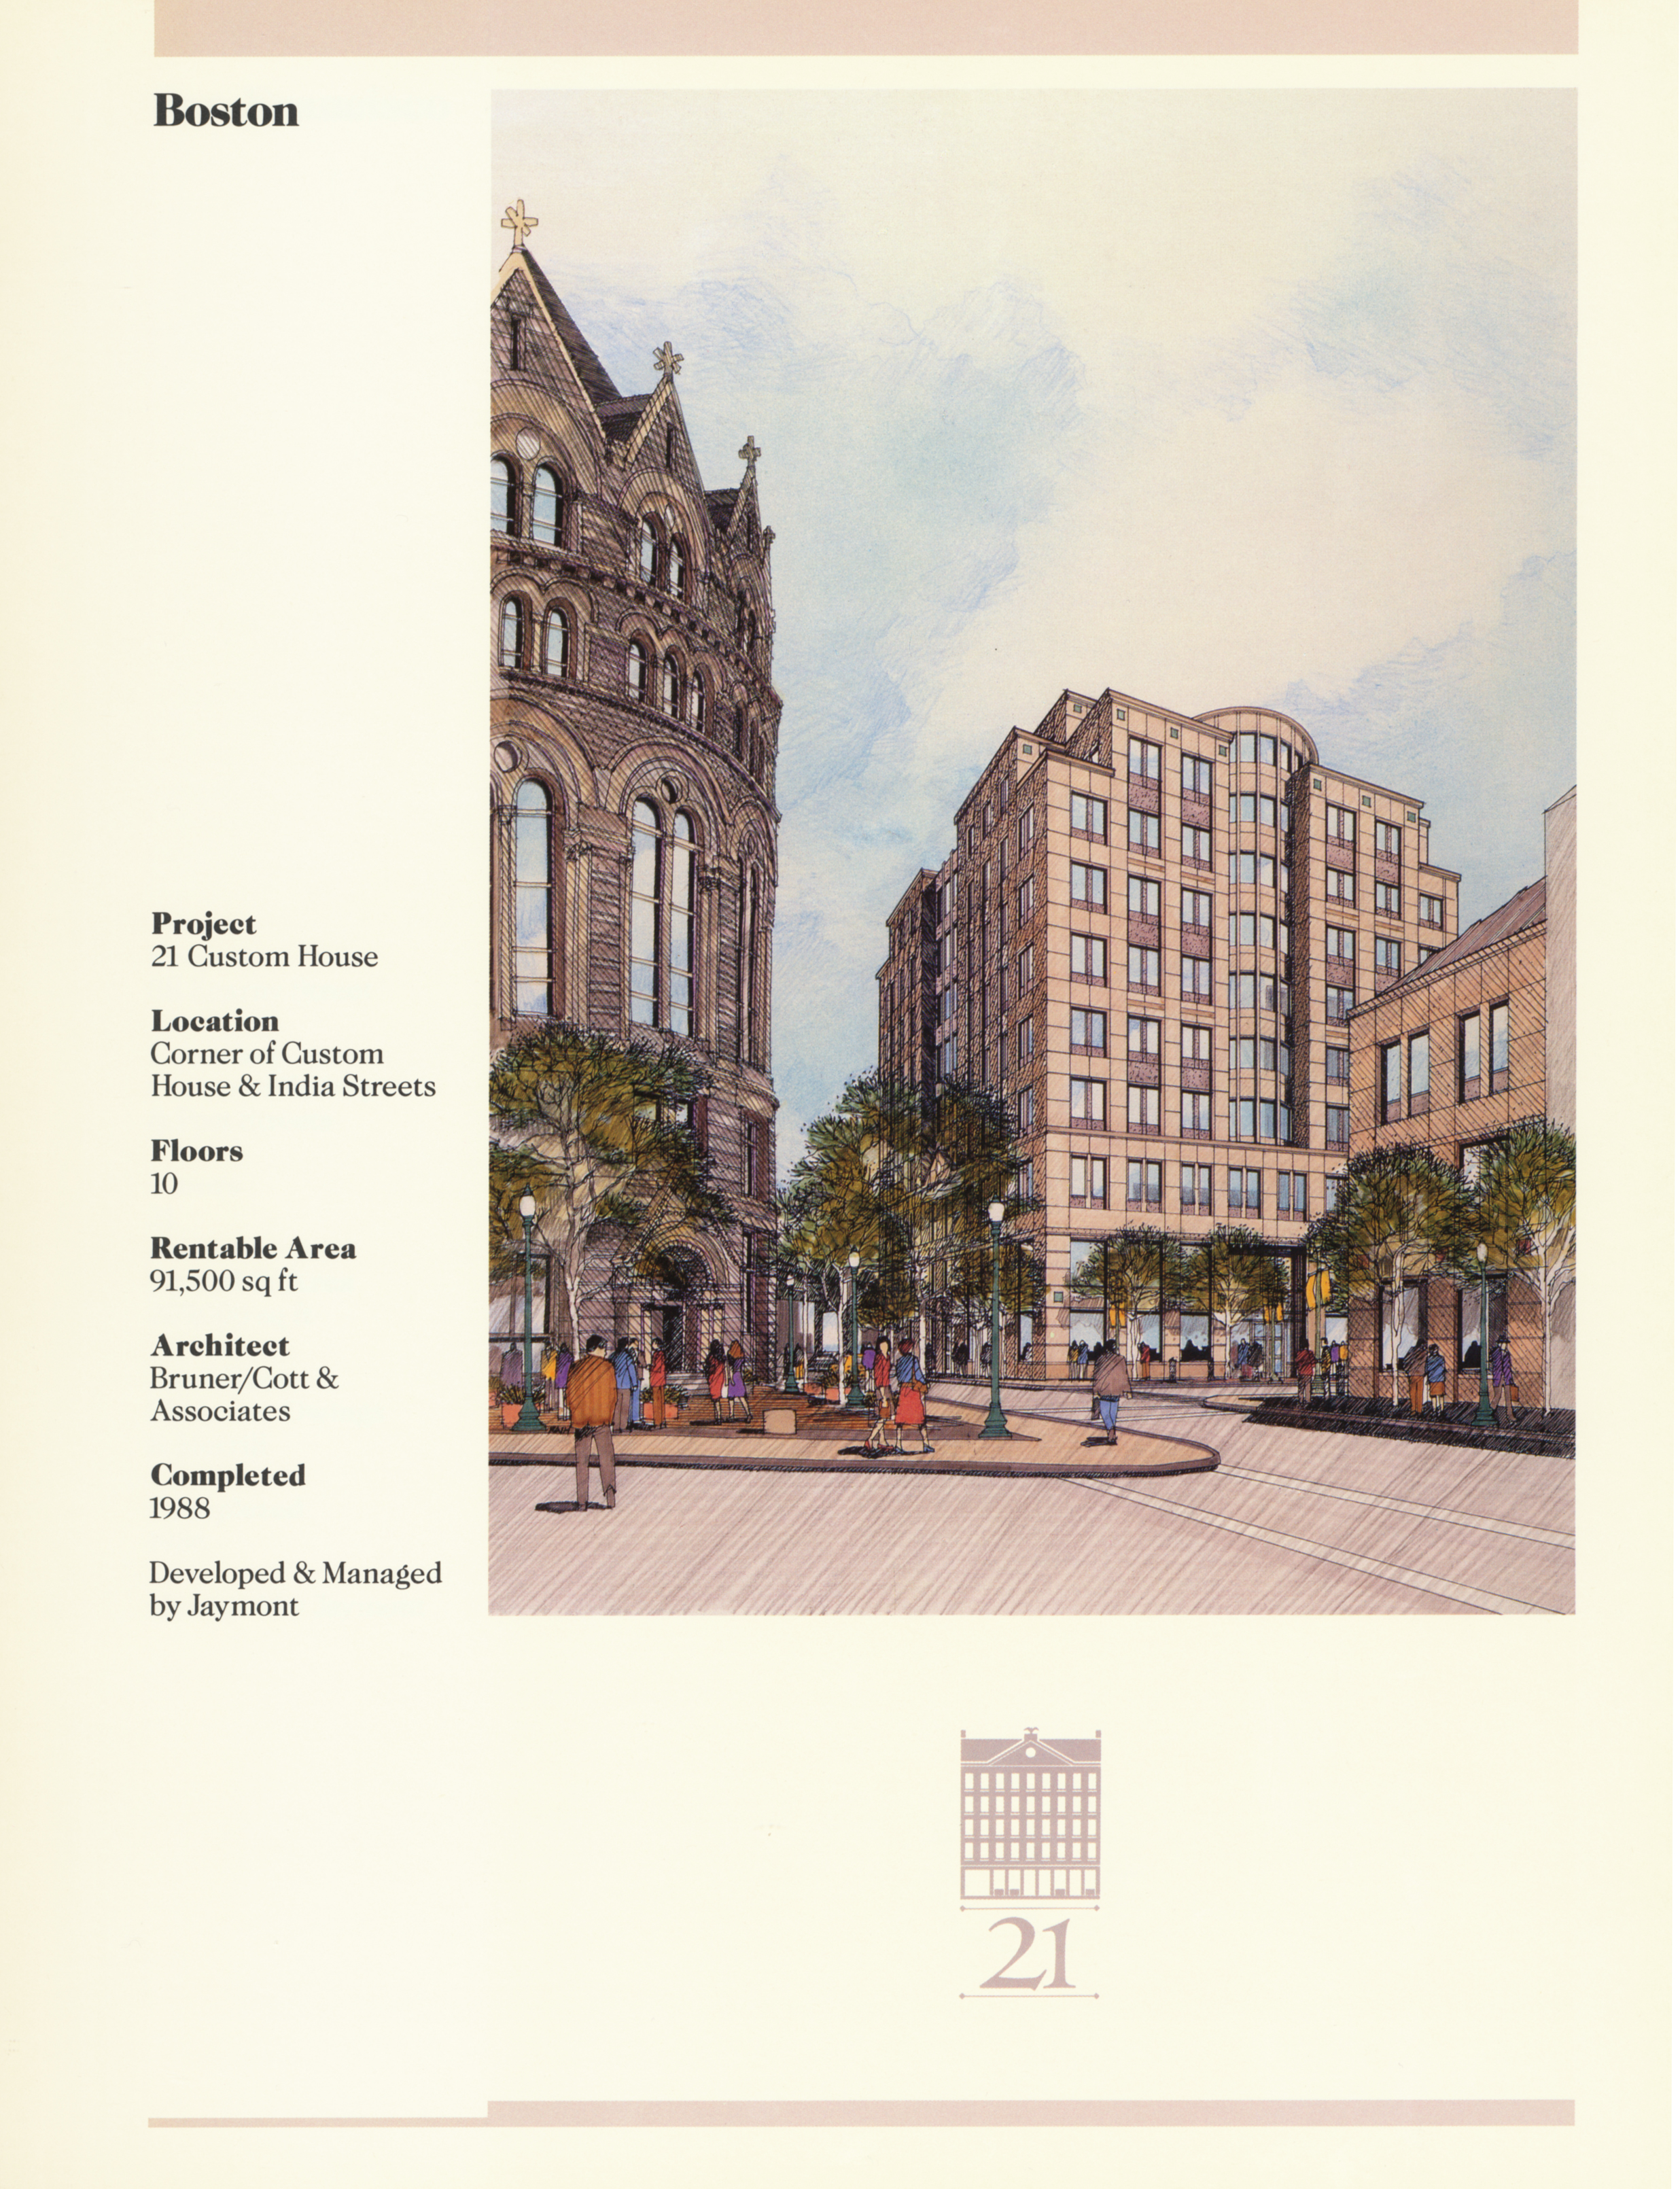 Fact sheet with building details and a large image of the building rendered before it was built.